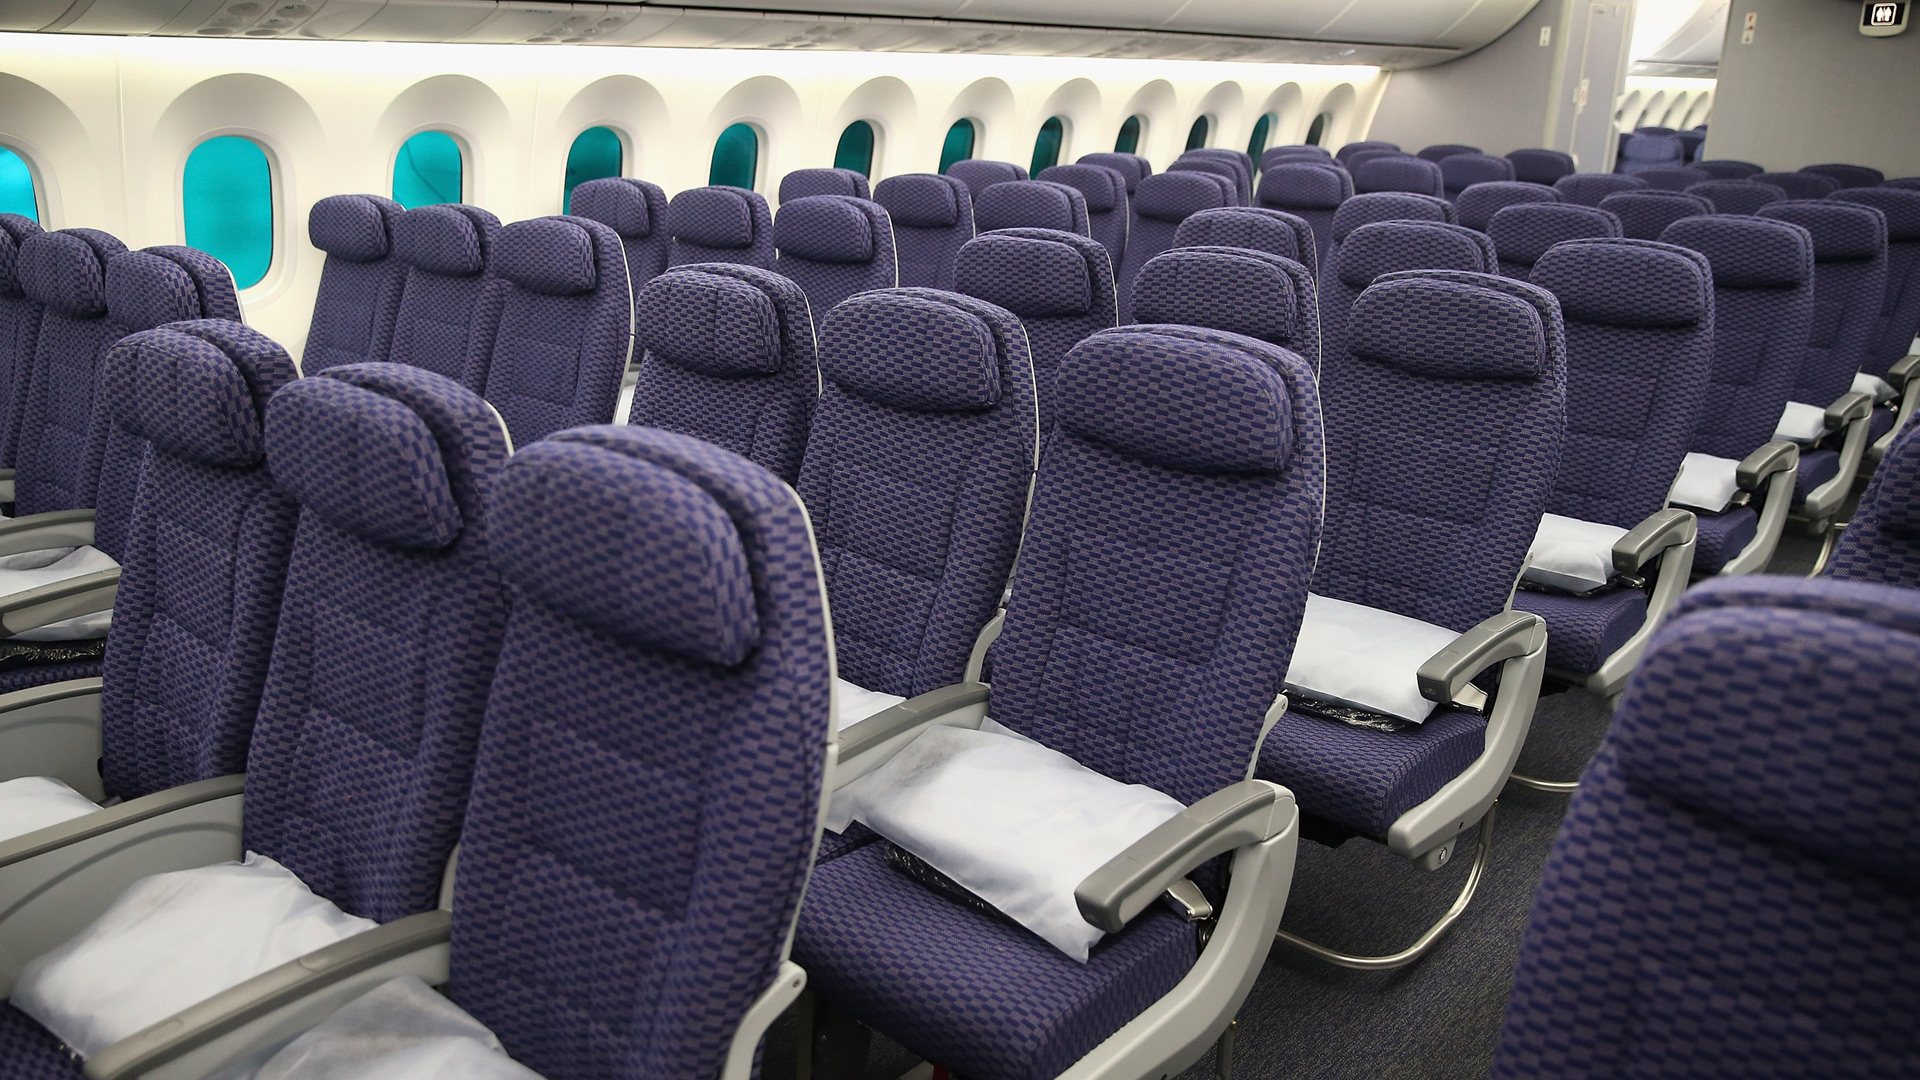 A file photo shows the cabin of an airplane. (Scott Olson/Getty Images)